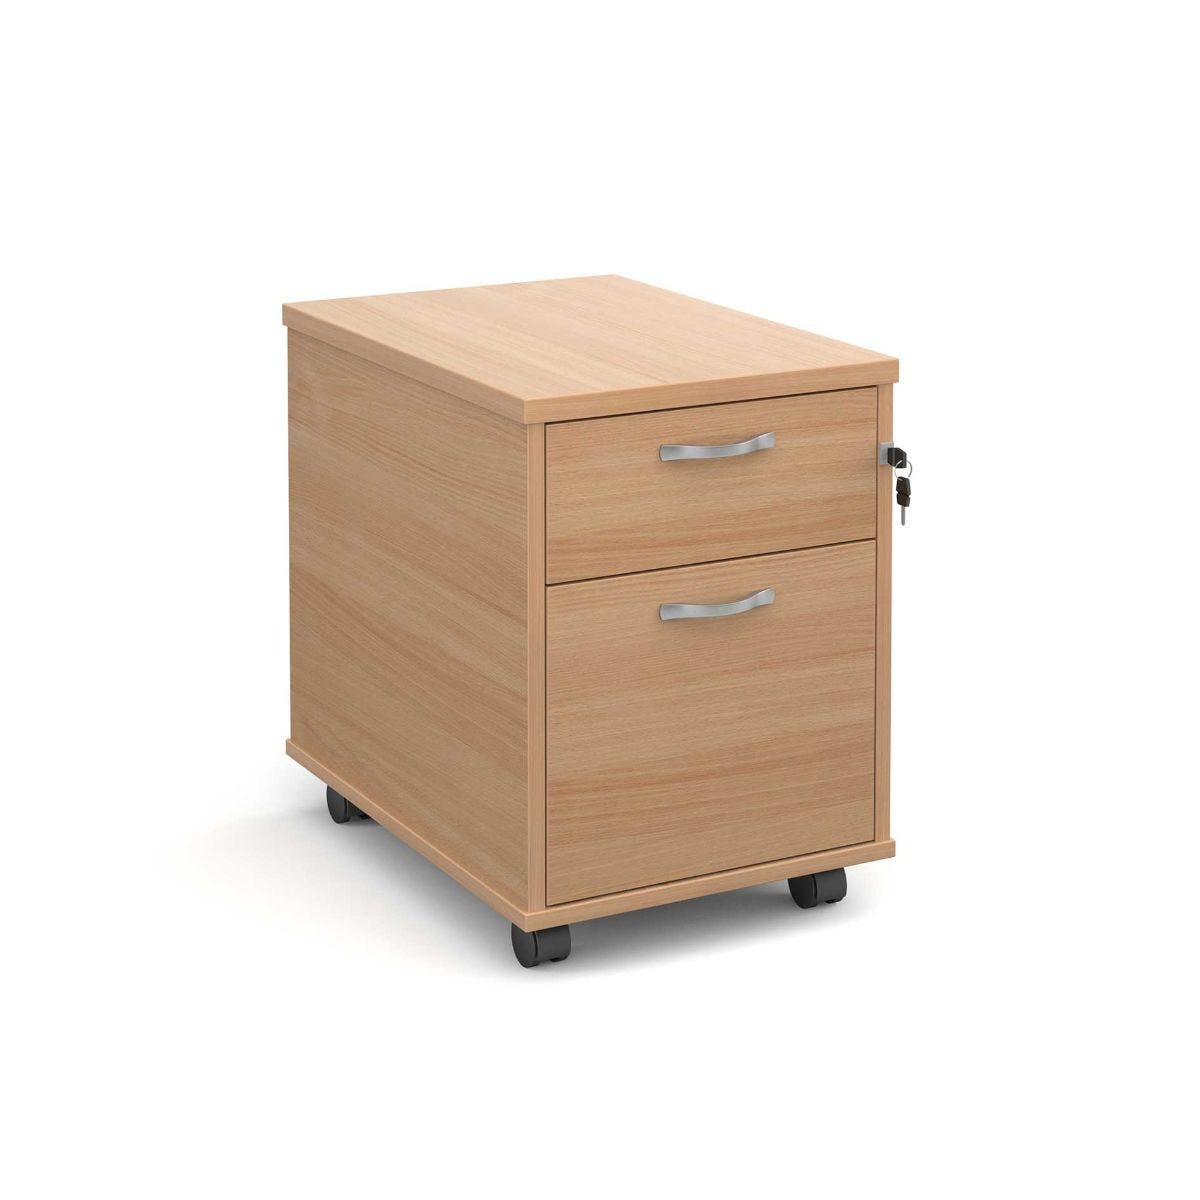 Mobile Pedestal with 2 Drawers, Beech